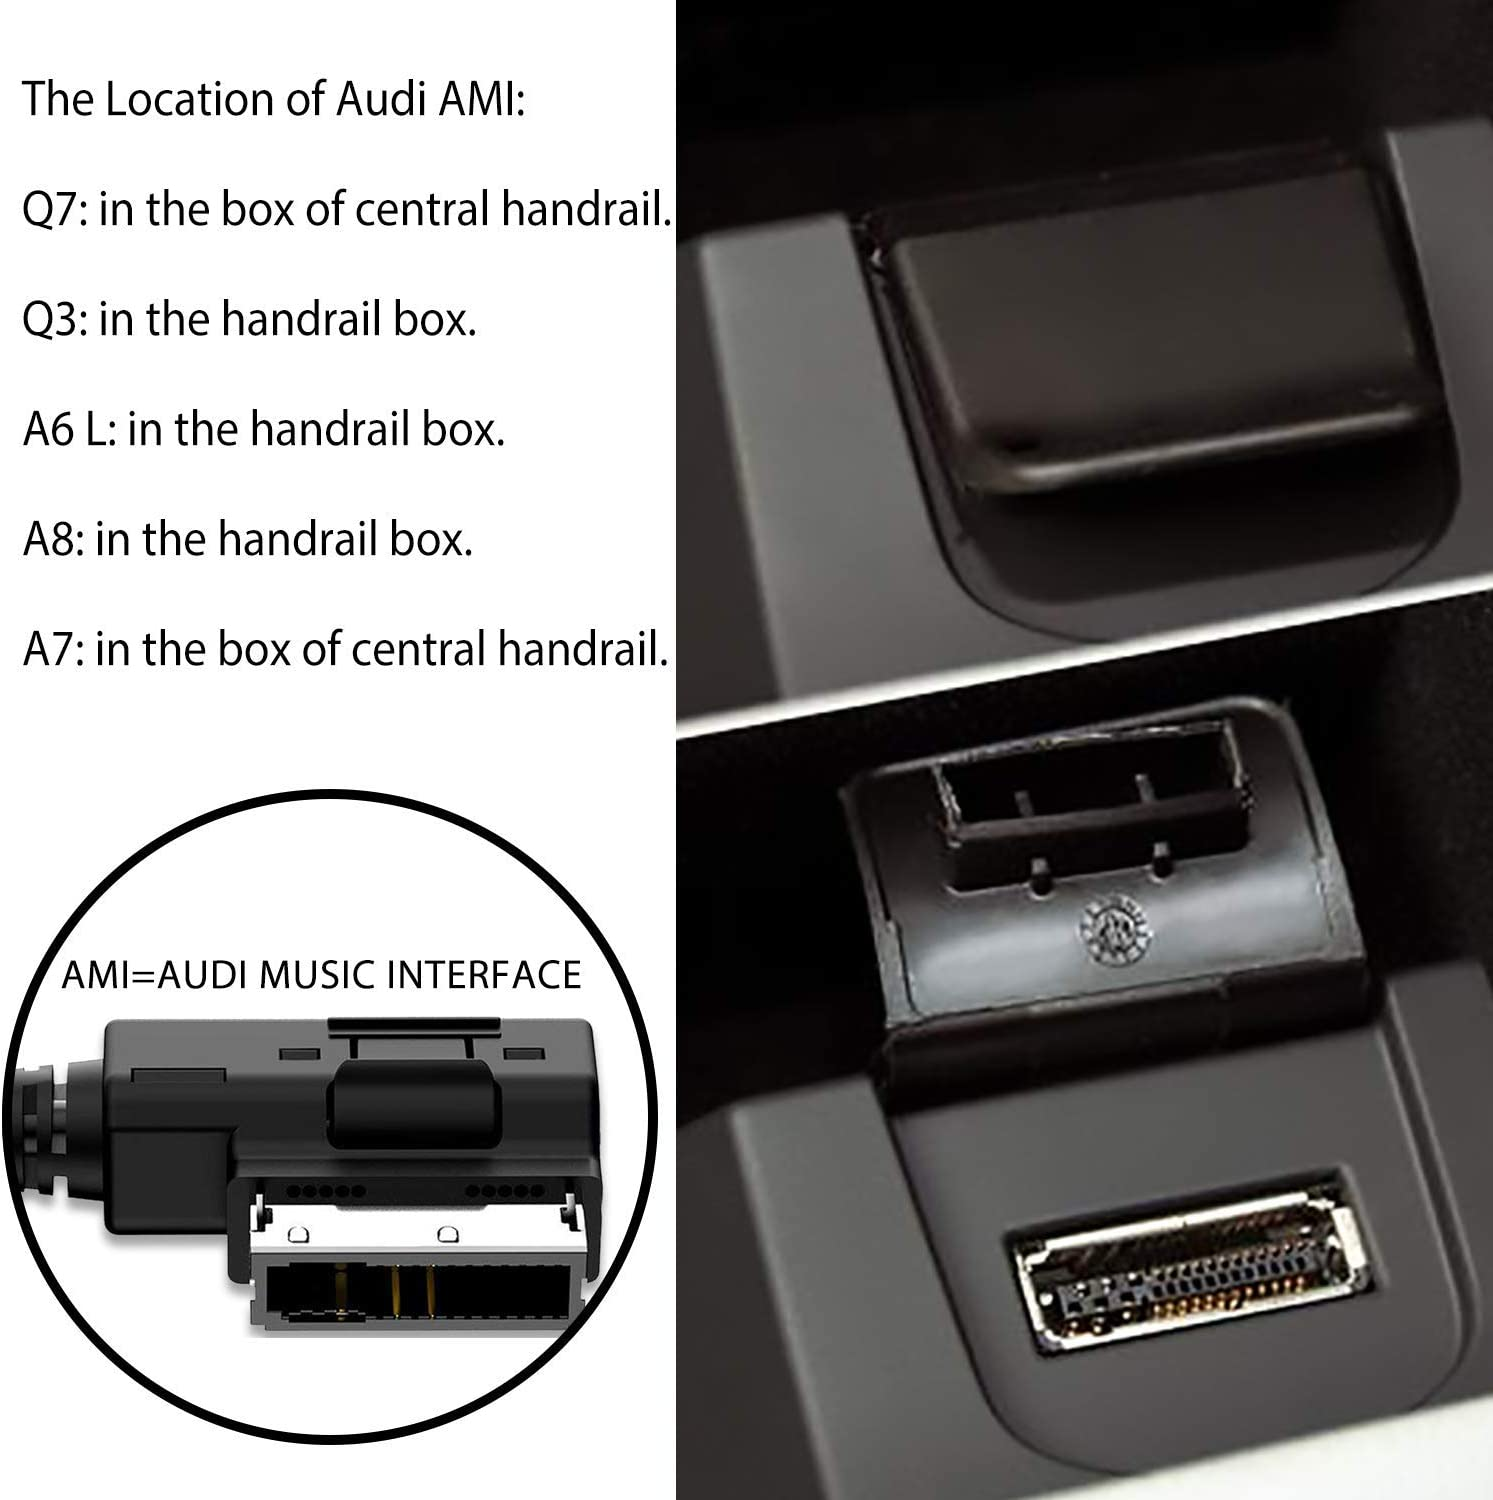 2008-2016 Audio Accessories Lead USB Car Charg-er Adatper Compatible for IP 11 X i8 i7 for Audi A3 A4 A5 A6 S4 S6 A7 Q3 Q5 Q7 A8 TT AMI Music Interface Cable for MMI 2G 3G RMC MIB